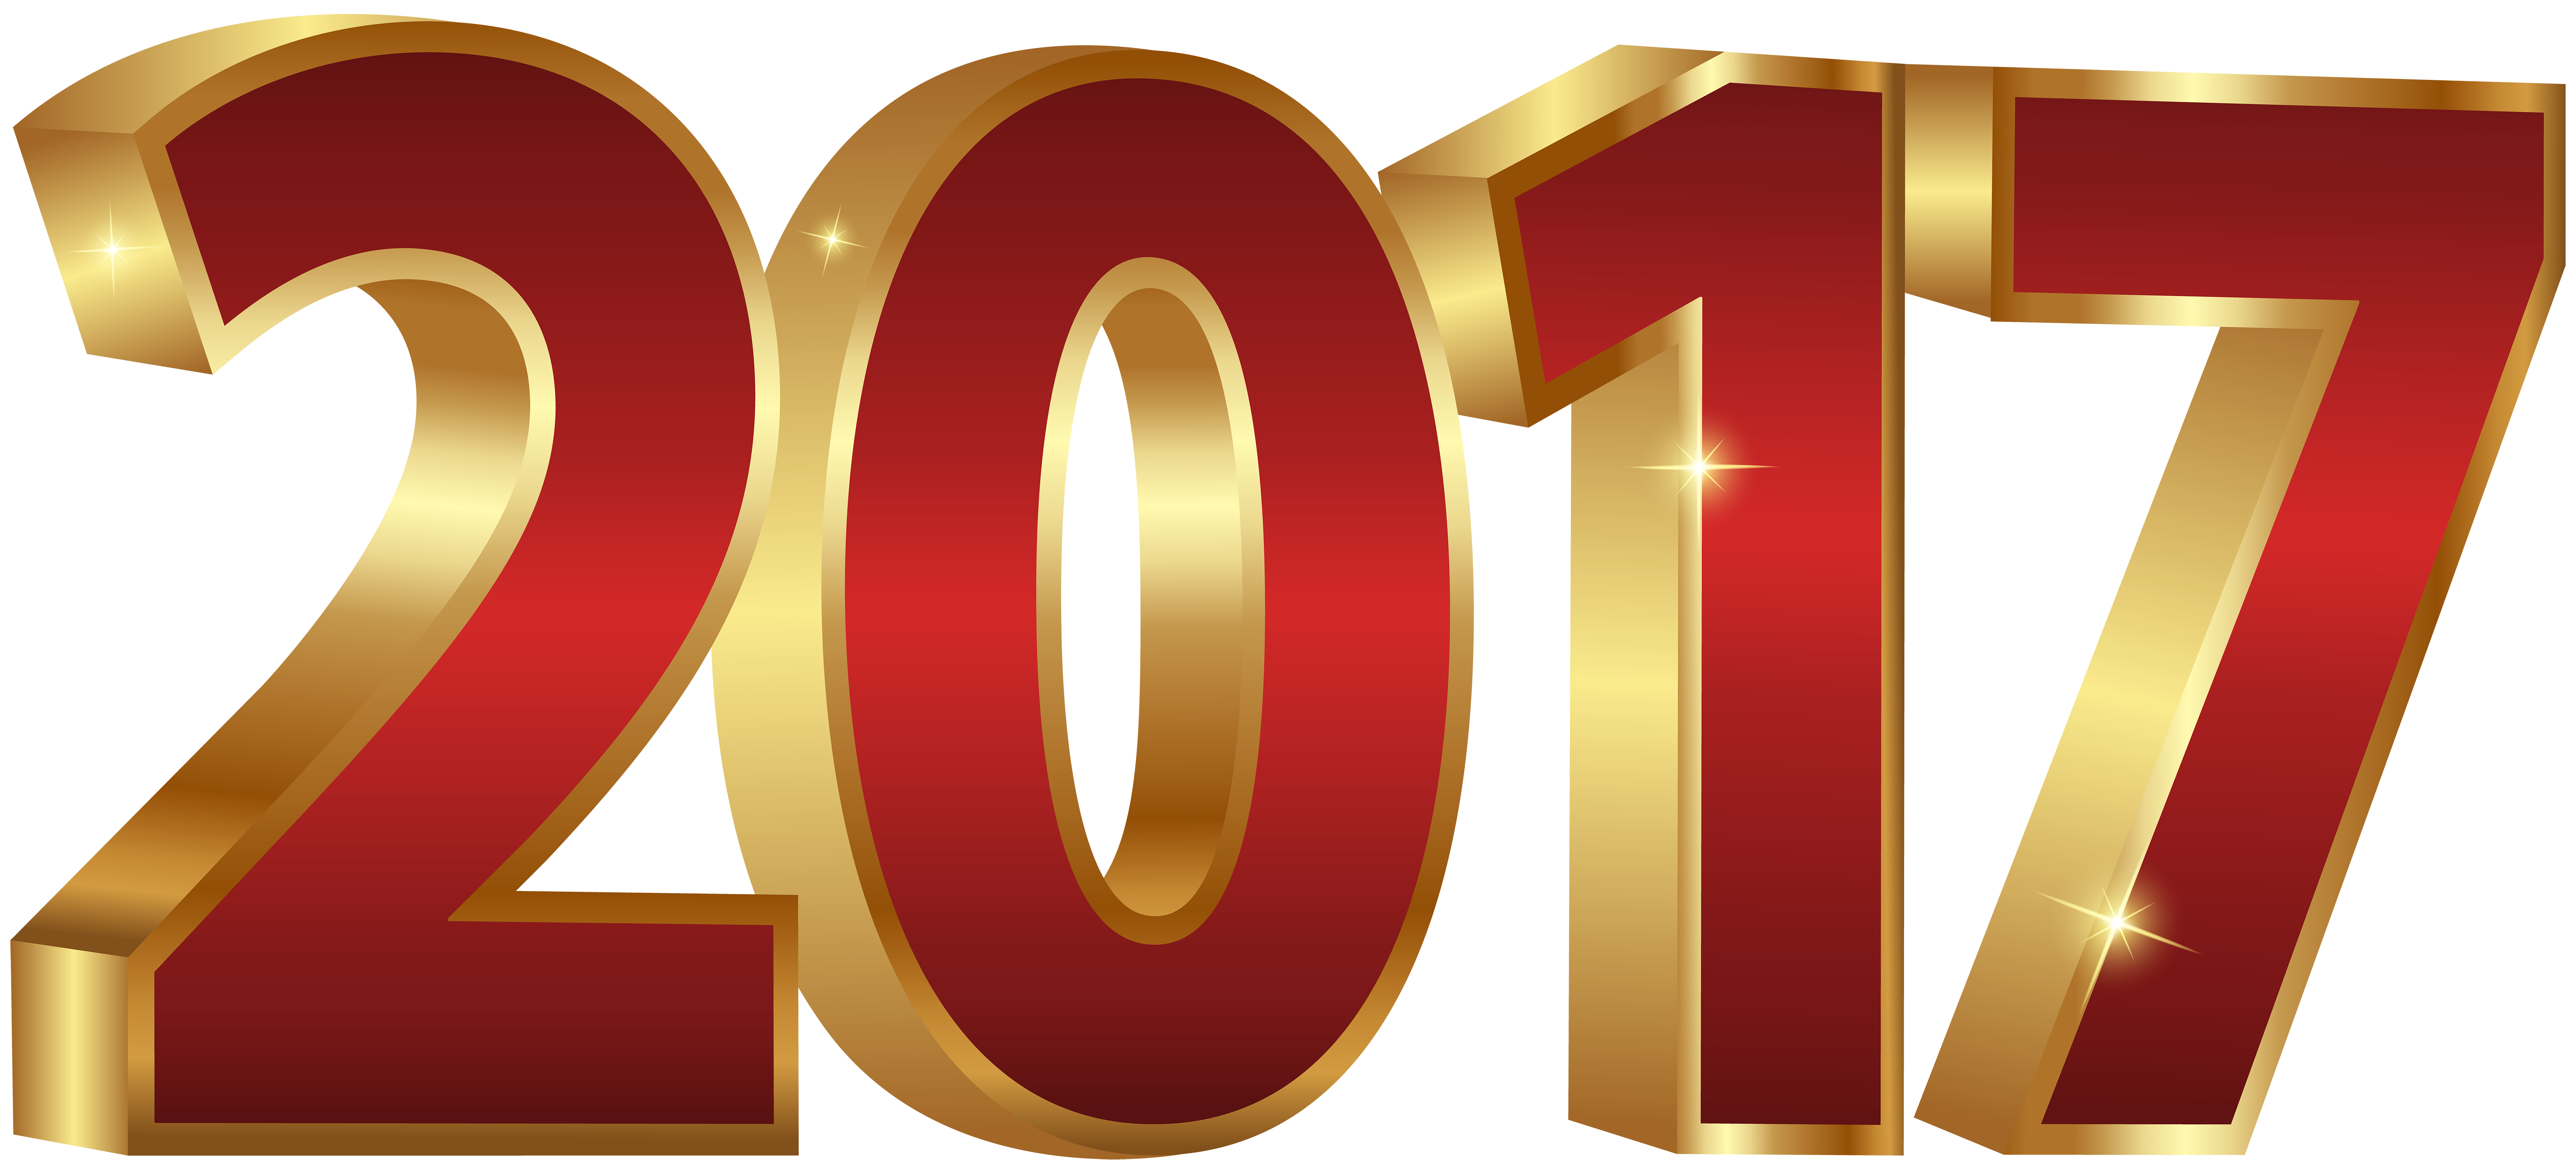 2017 clipart 2017 number. Free clip art download